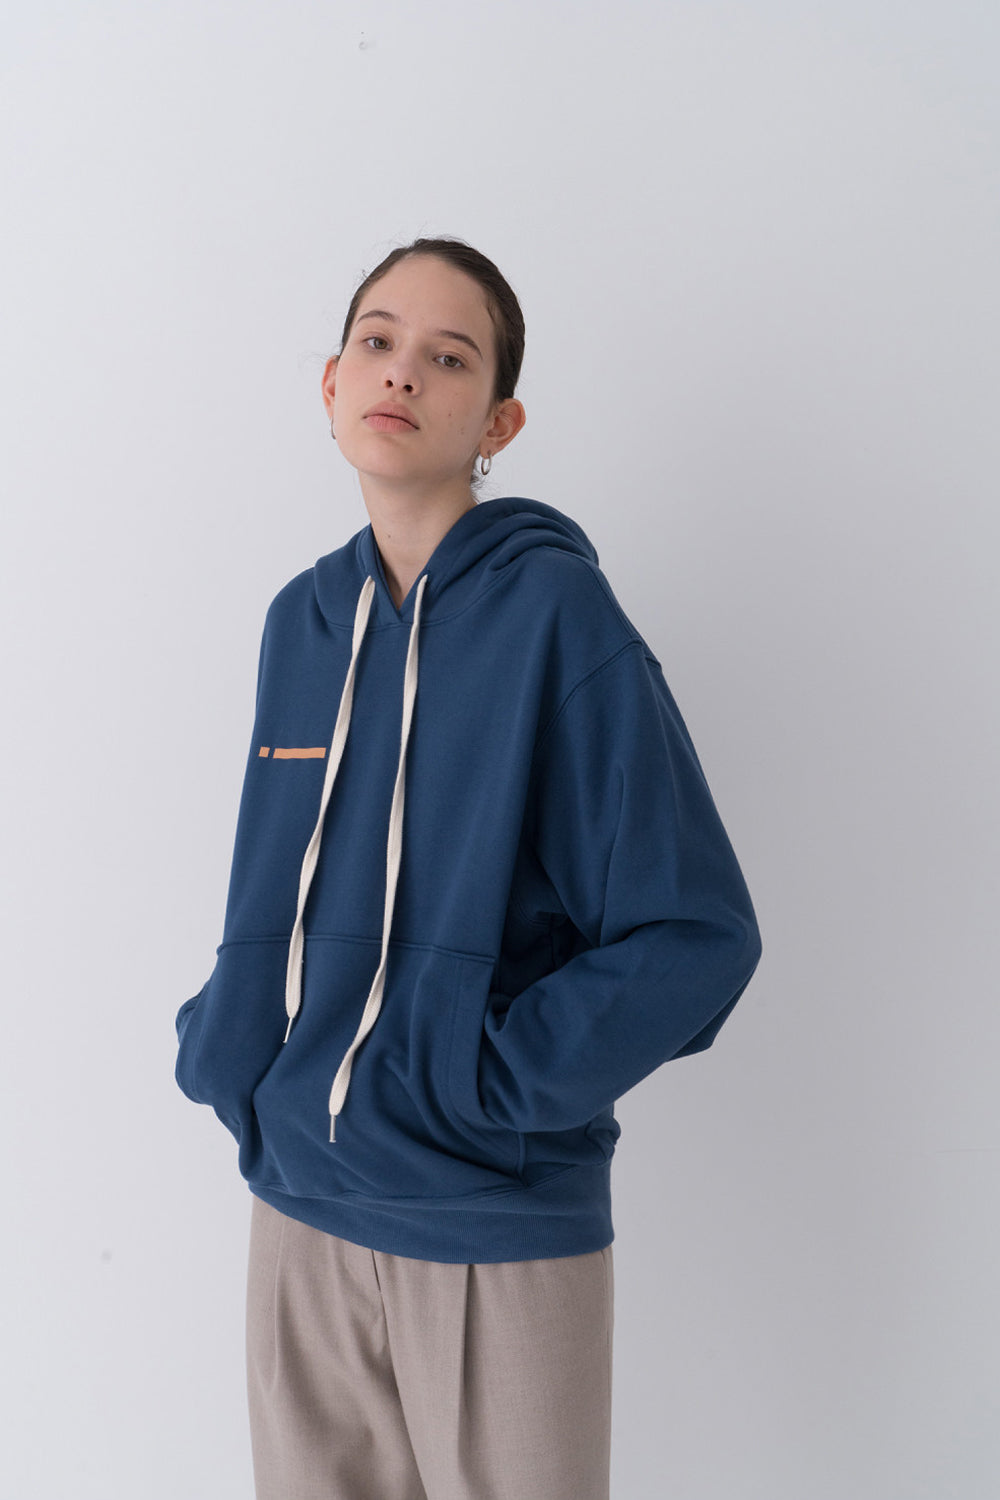 NOTA Signal String Hood Blue Modest Long-Sleeve Women's Sweater with Front Pockets, Hoodie, Loose Fit 100% Cotton